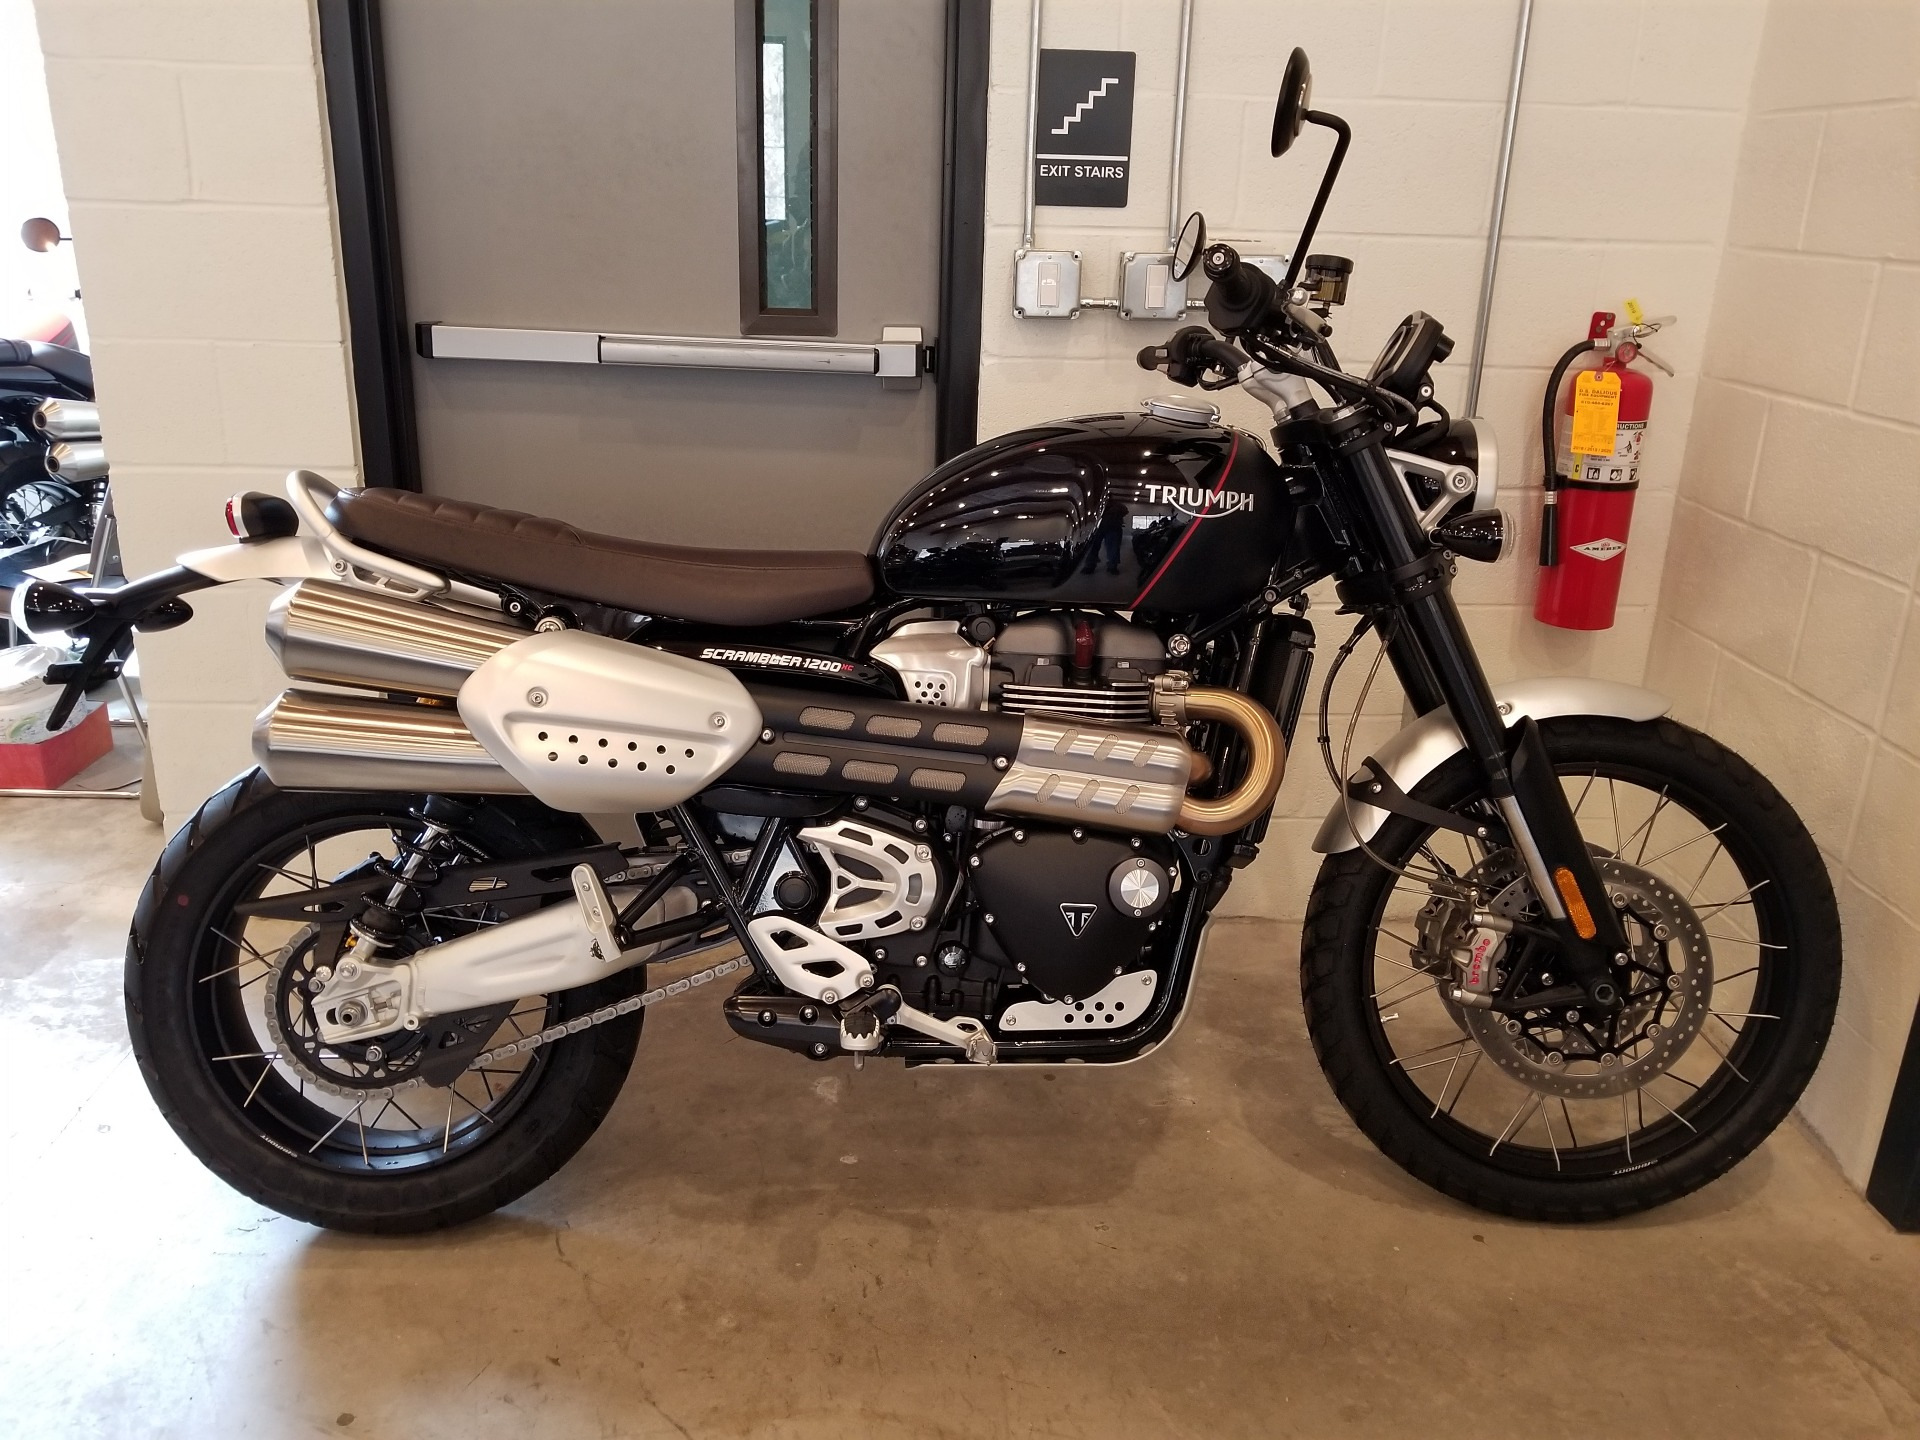 2019 Triumph Scrambler 1200 XC in Port Clinton, Pennsylvania - Photo 1